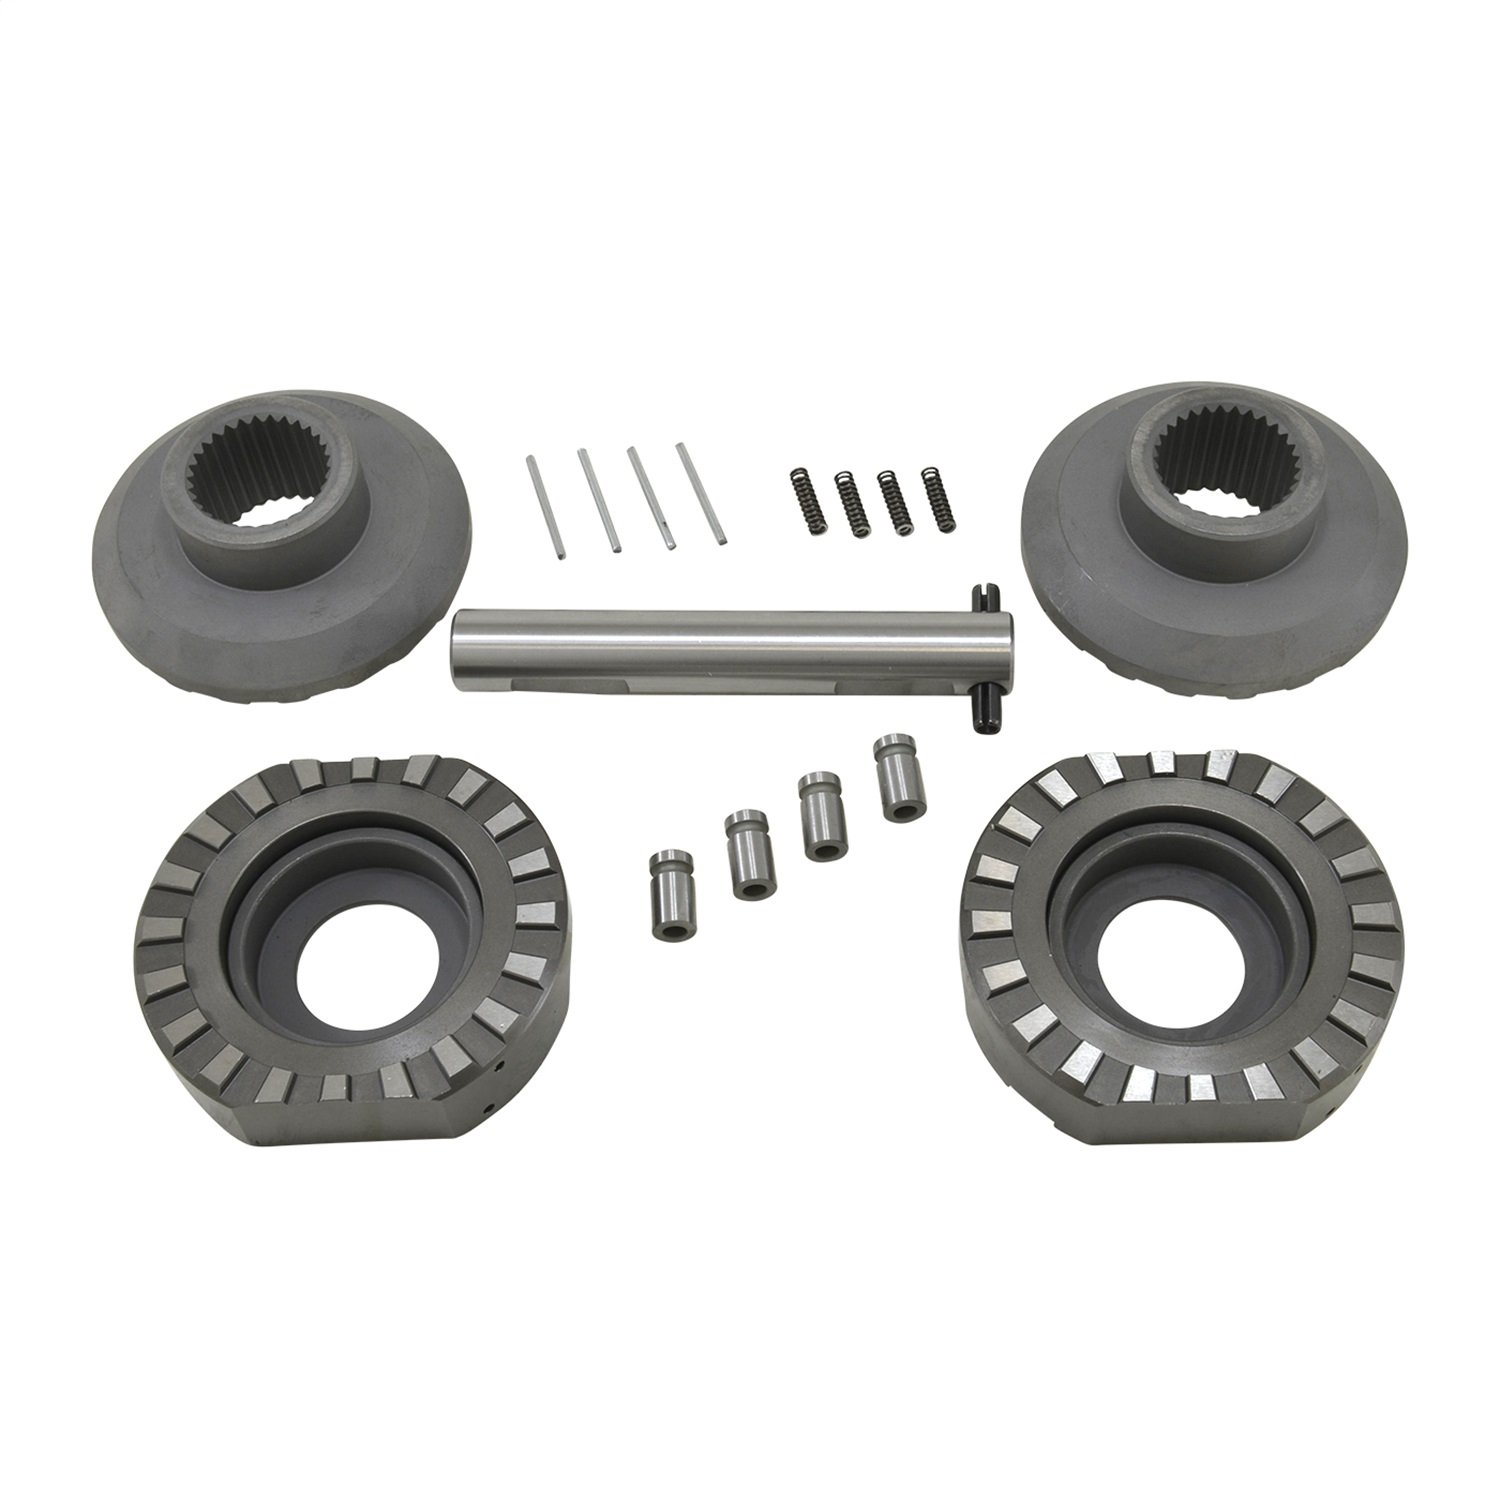 USA Standard Gear (SL M20-29) Spartan Locker for Model 20 differential with 29 spline axles by USA Standard Gear